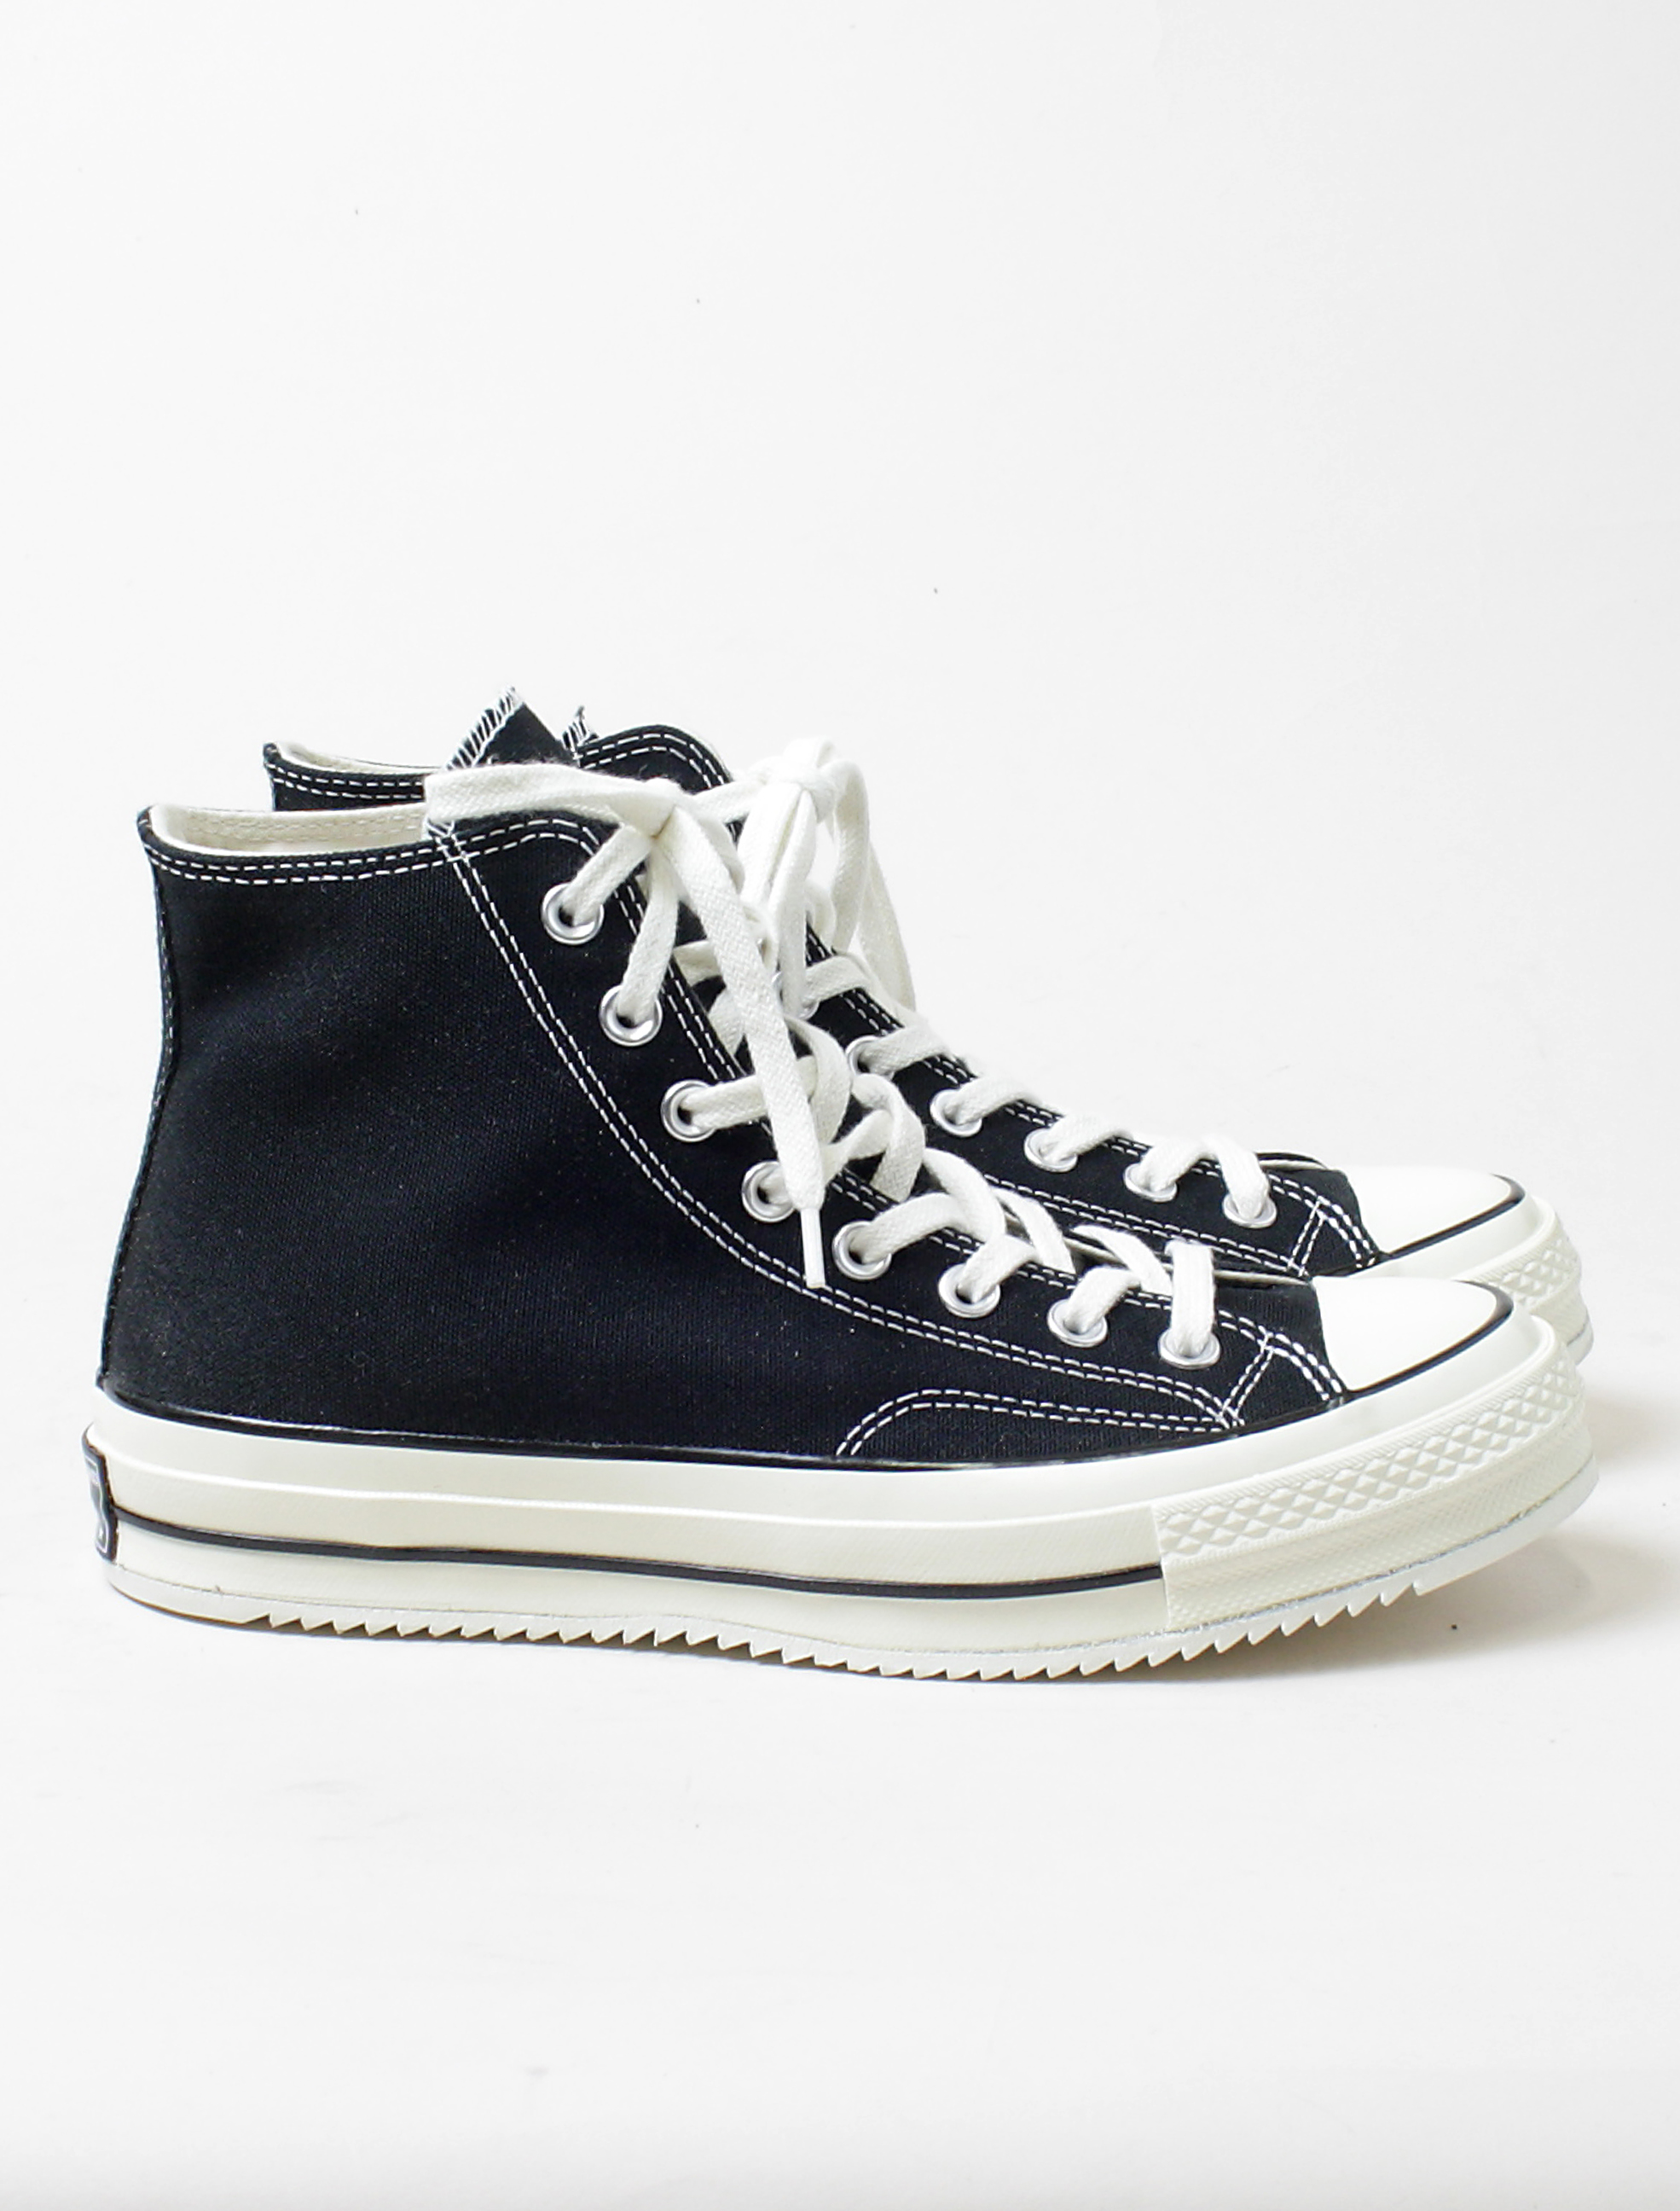 fadb36f55071 Riparazione - Men s Custom converse high top